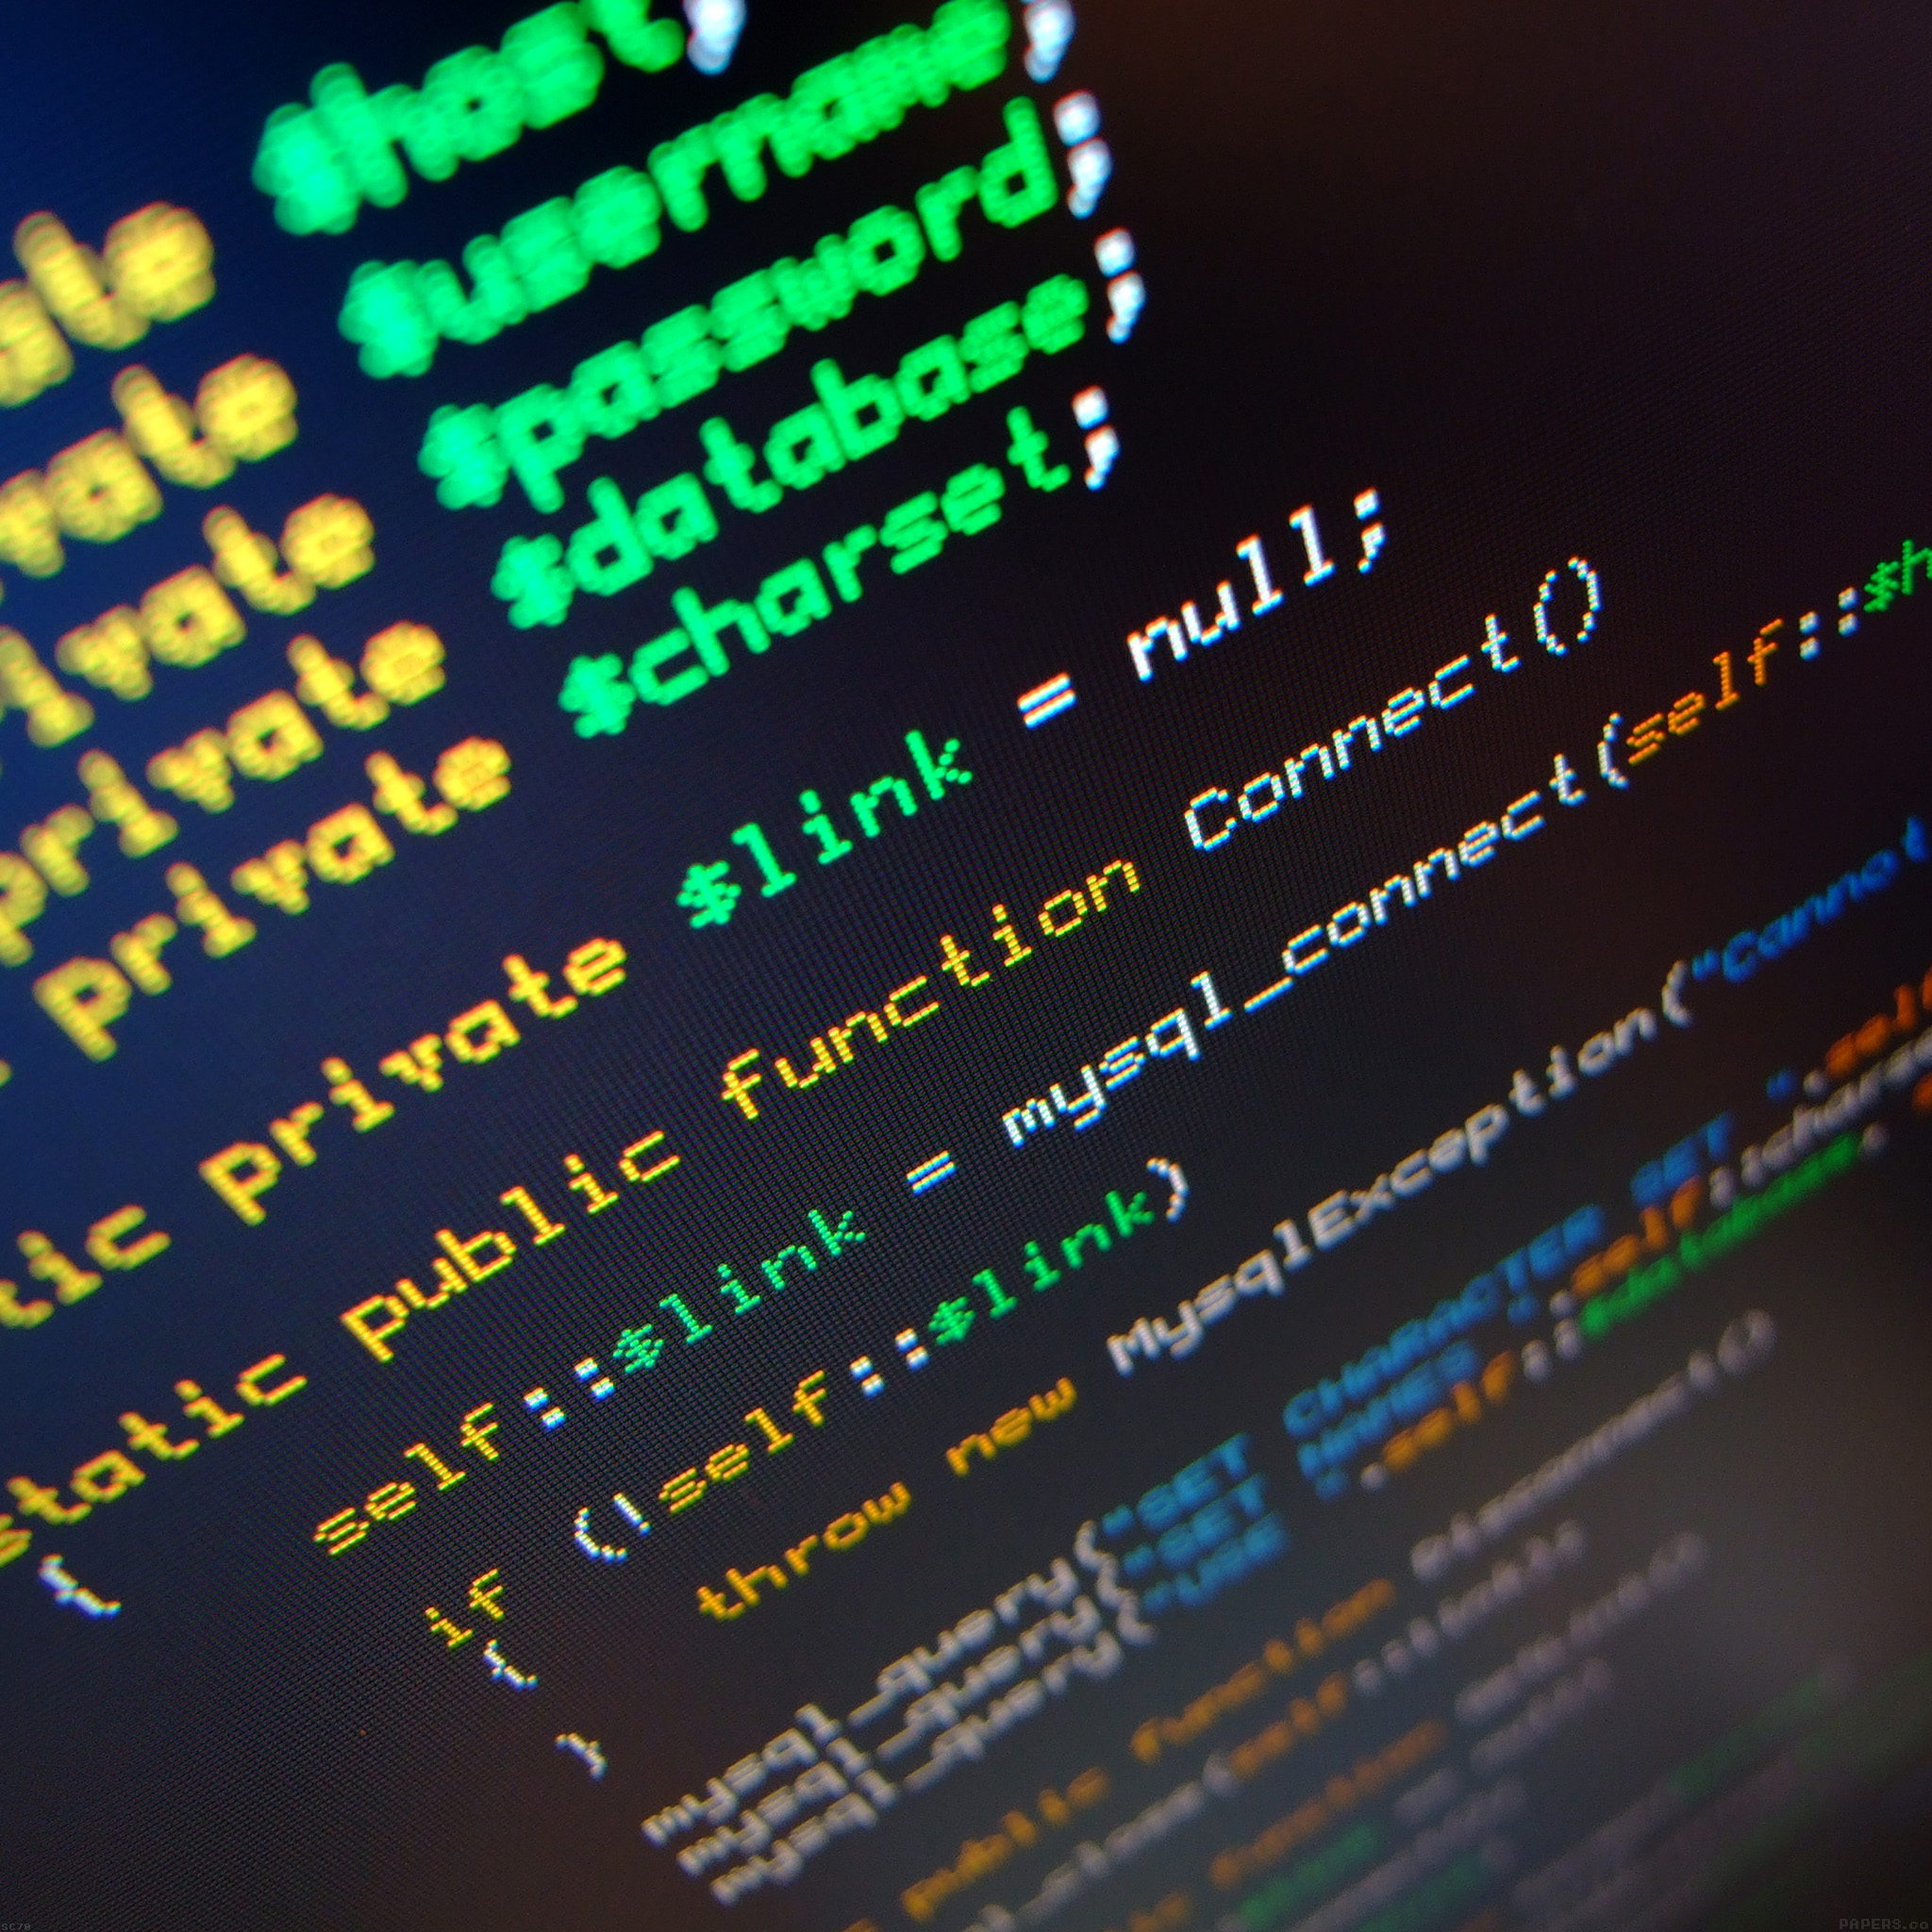 hackers and painters essays on the art of programming Discover the art and artists who were influenced  to presentations and essay writing 3 create mural, painting or illustration  artistic programming is made.